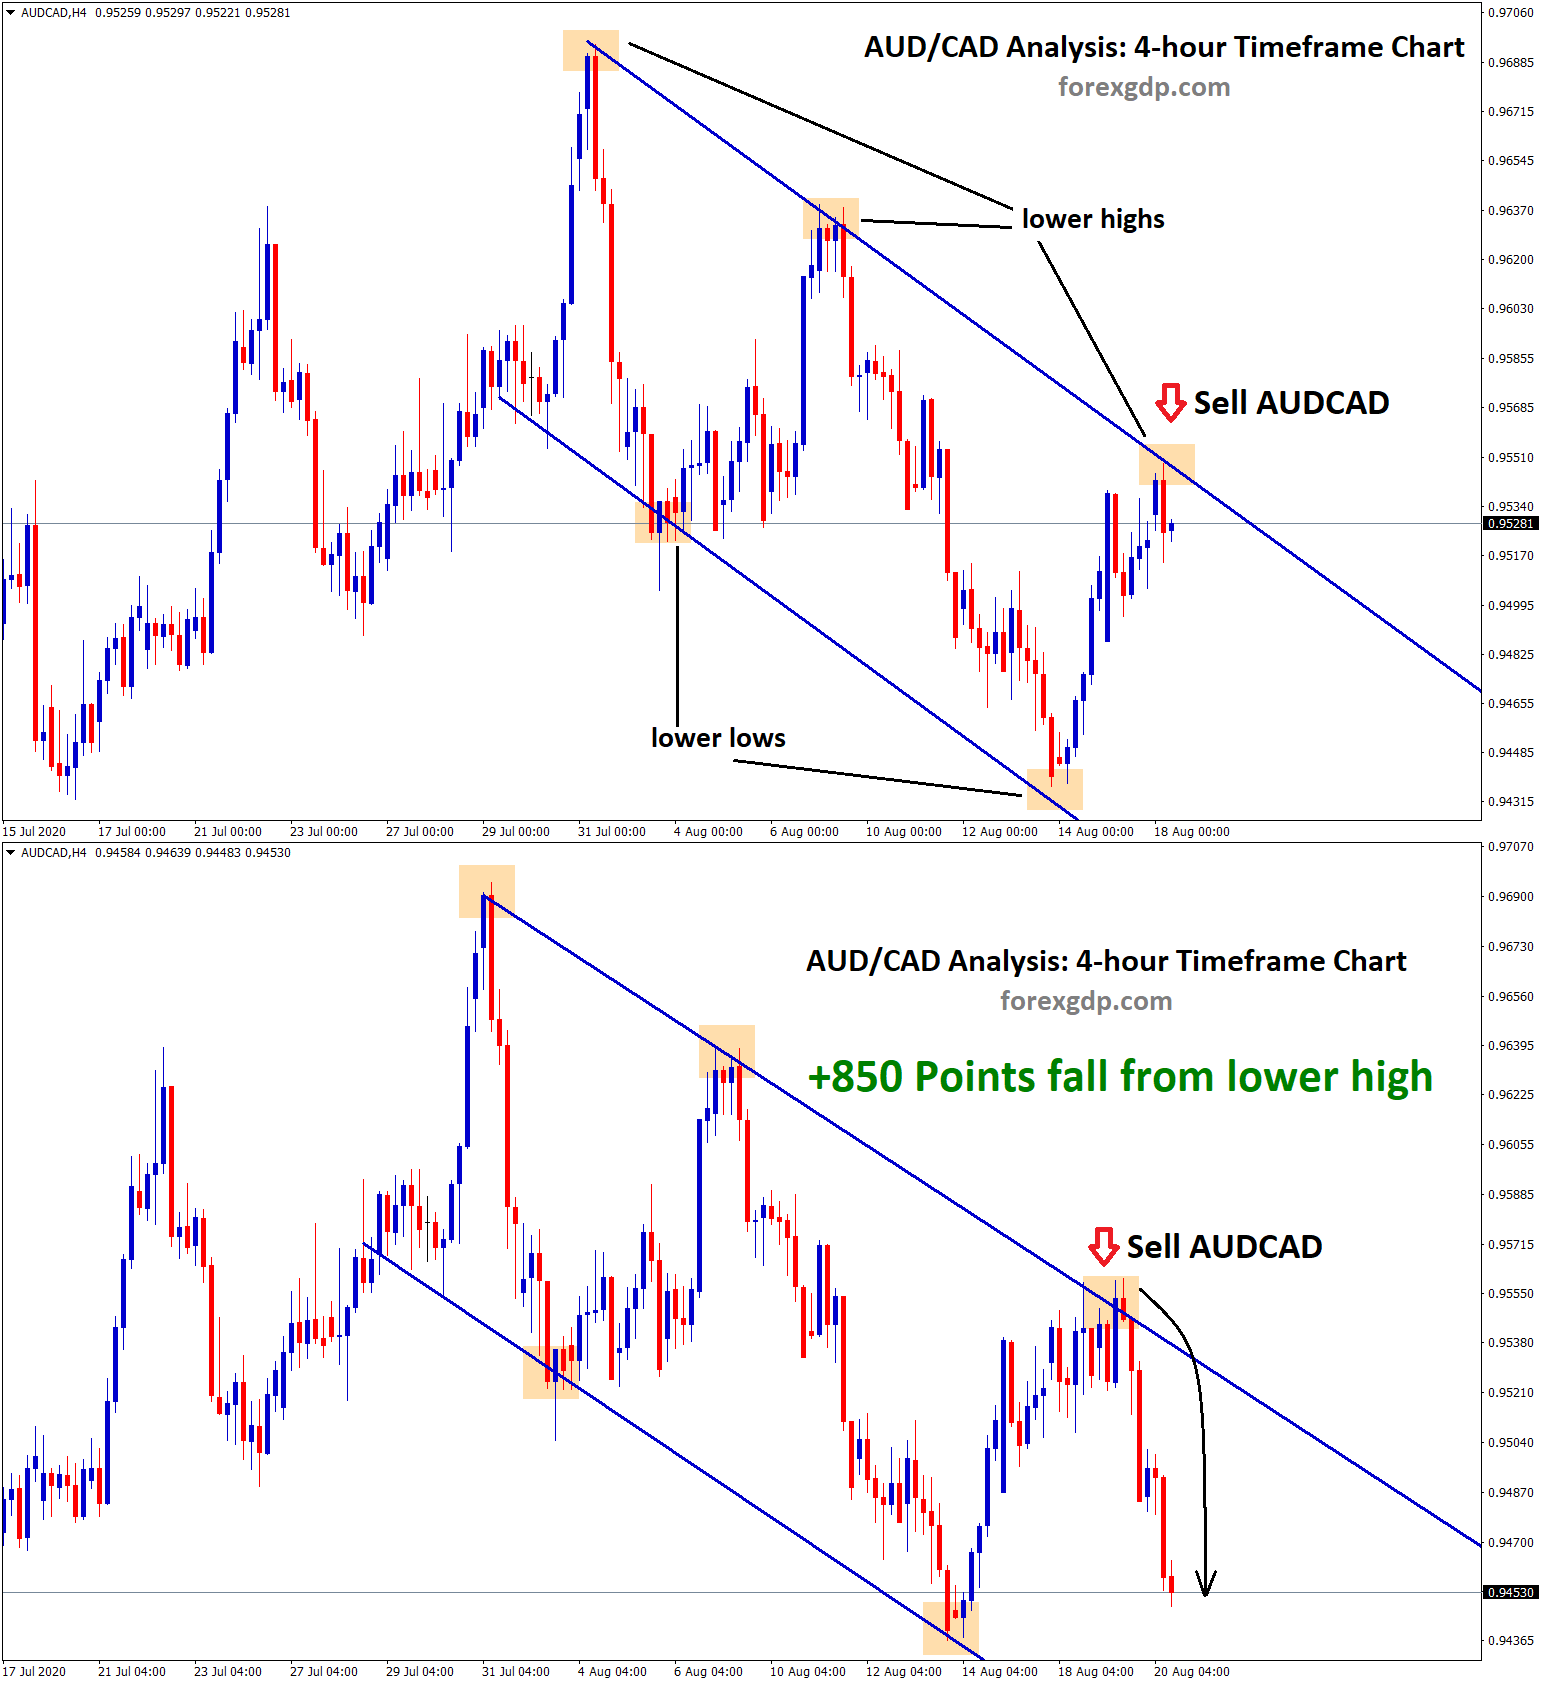 audcad fall from lower high reach 850 points